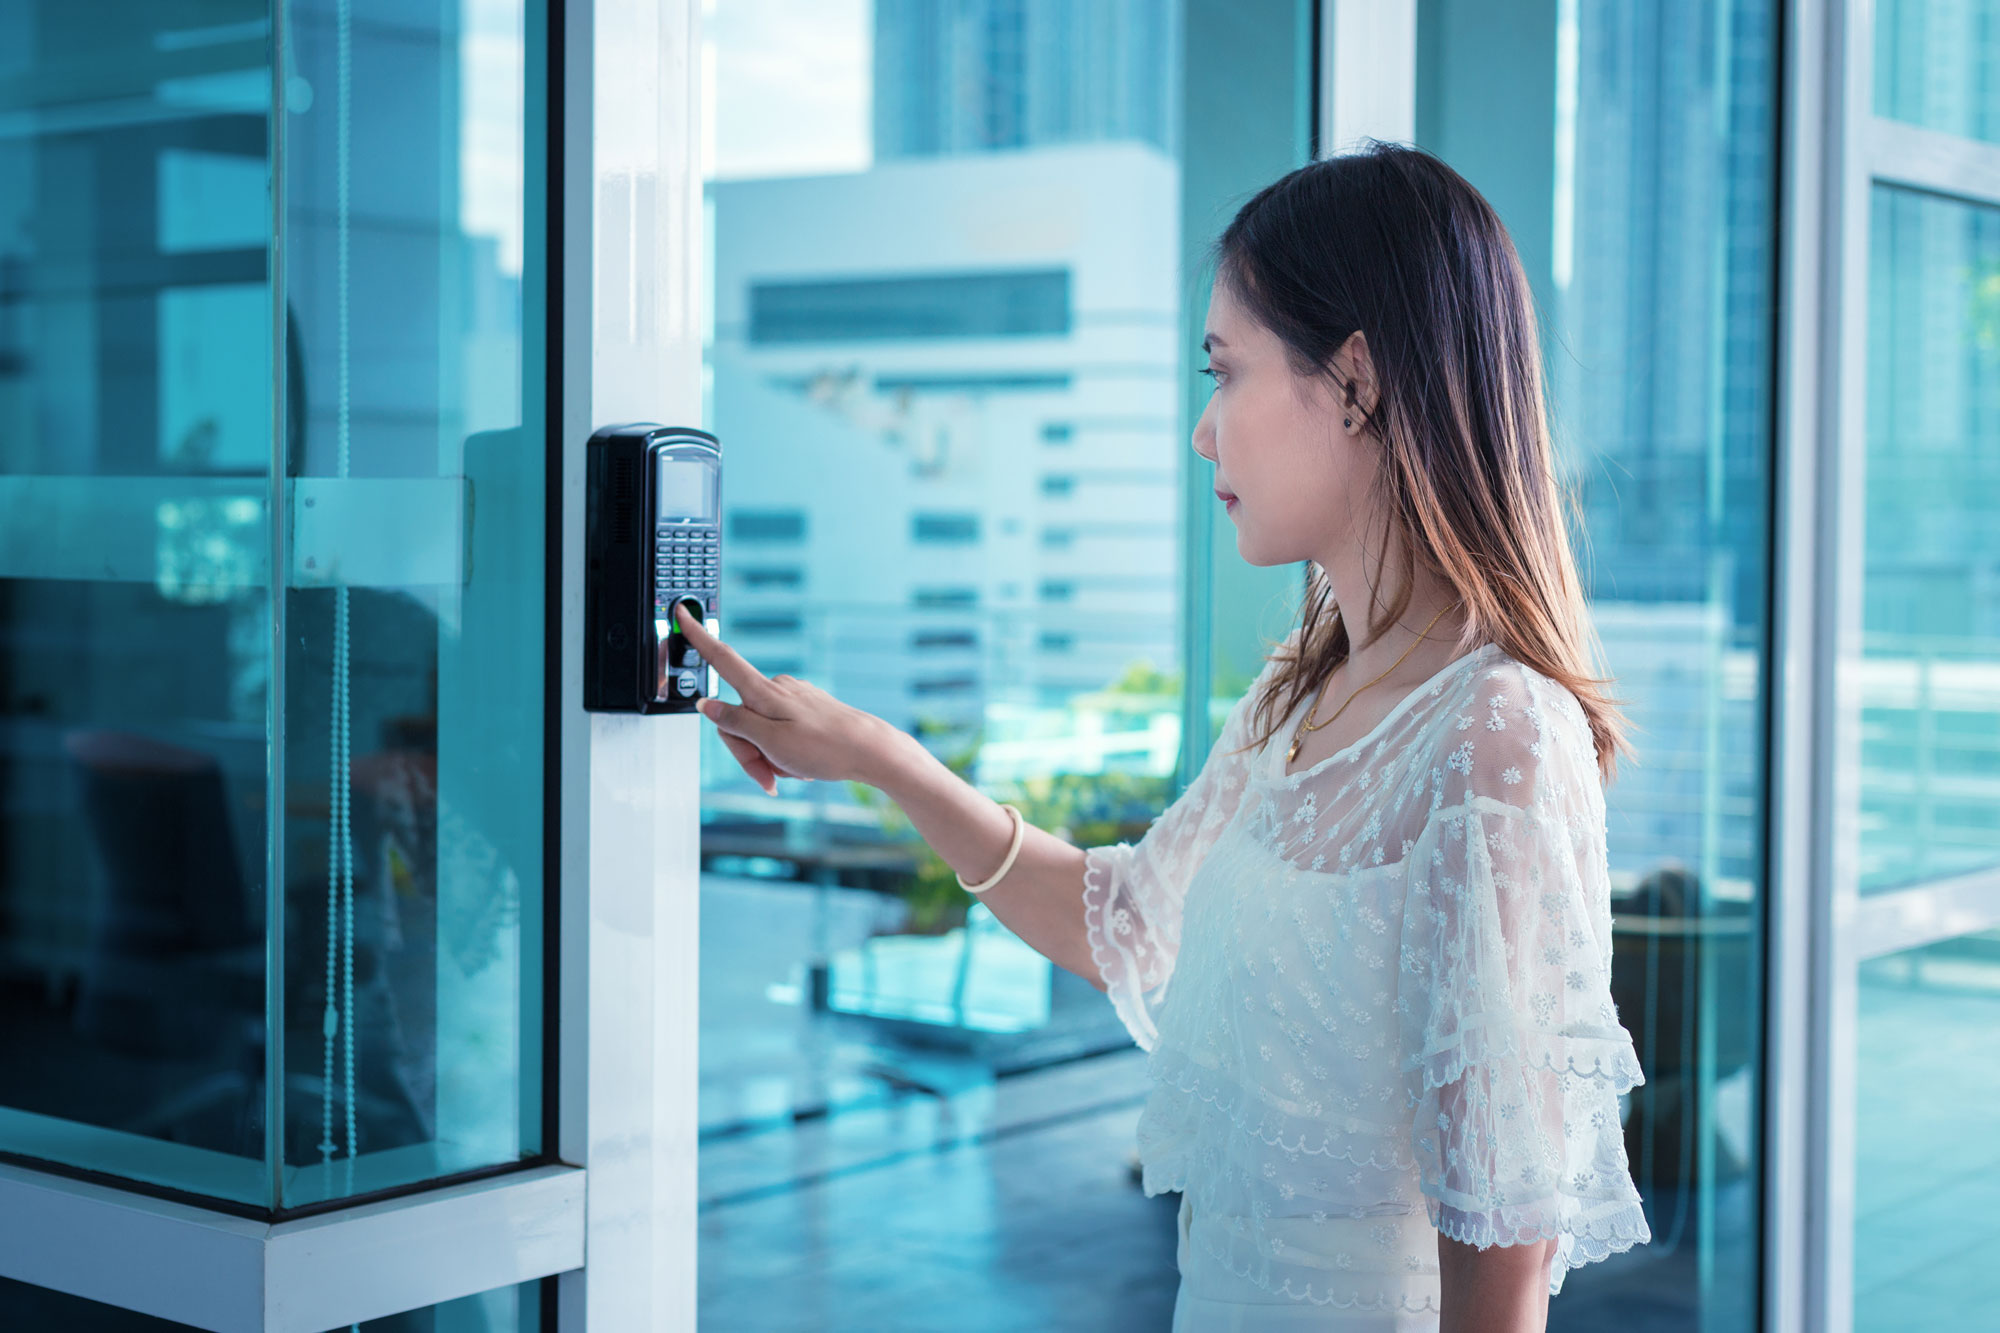 3 ways to Reduce Change Orders for Door Hardware & Access Control Systems